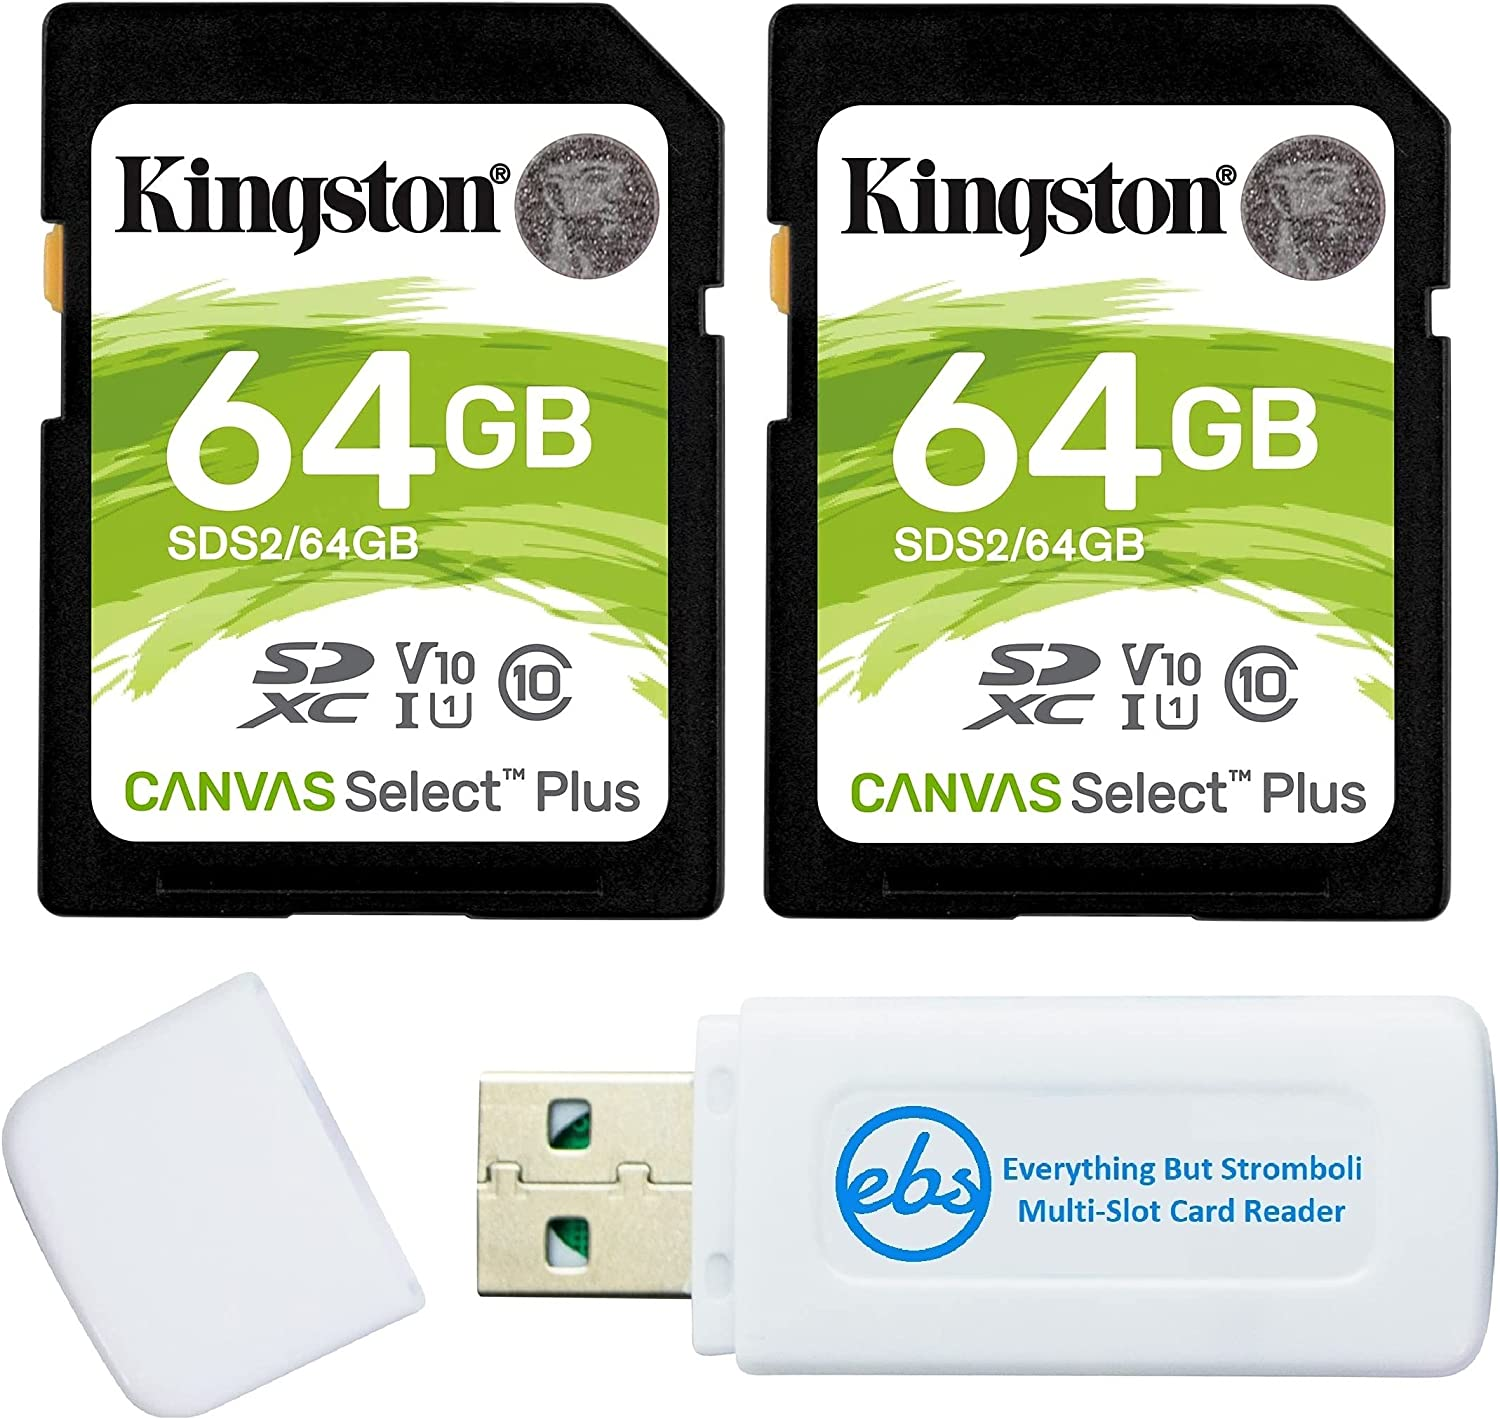 Kingston Canvas Select Plus 64GB SD Memory Card for Camera (2 Pack Bundle) SDXC Card Class 10 UHS-1 U3 100MB/s Read Speed (SDS2/64GB) Bundle with (1) Everything But Stromboli SD & Micro Card Reader